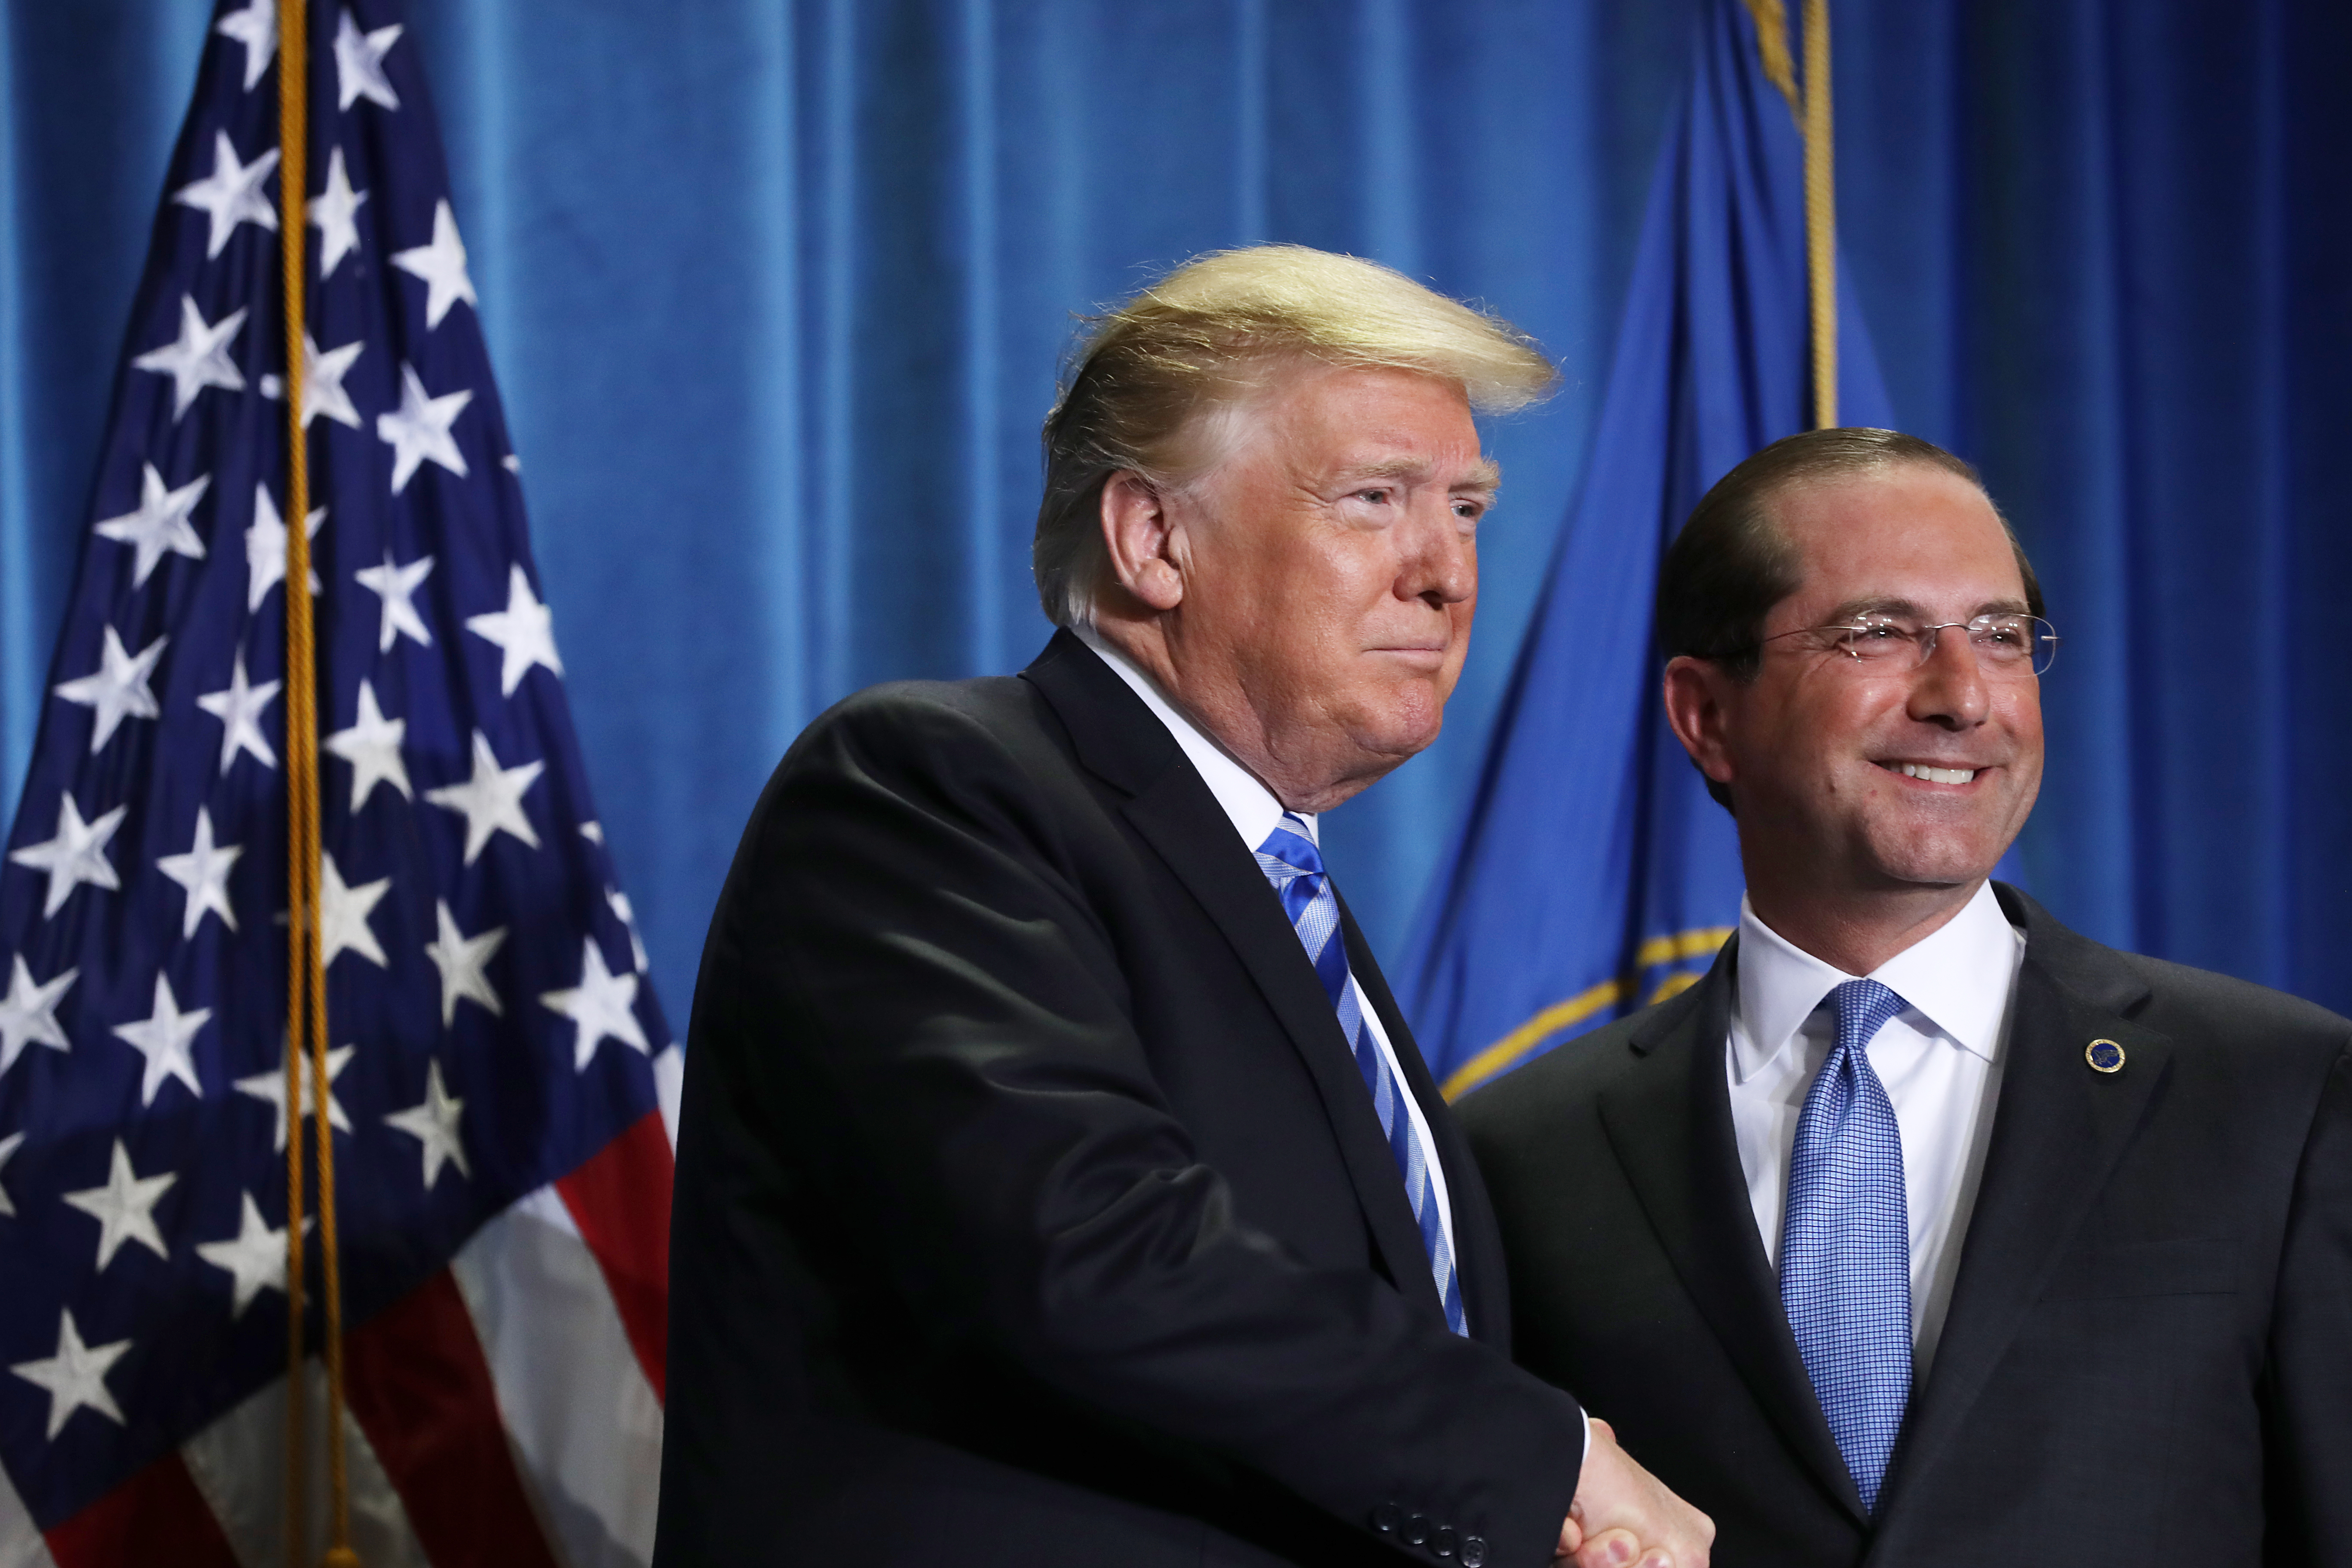 President Donald Trump (L) shakes hands with Health and Human Services Secretary Alex Azar before announcing a plan to overhaul how Medicare pays for certain drugs during a speech at HHS headquarters October 25, 2018 in Washington, DC. Chip Somodevilla/Getty Images